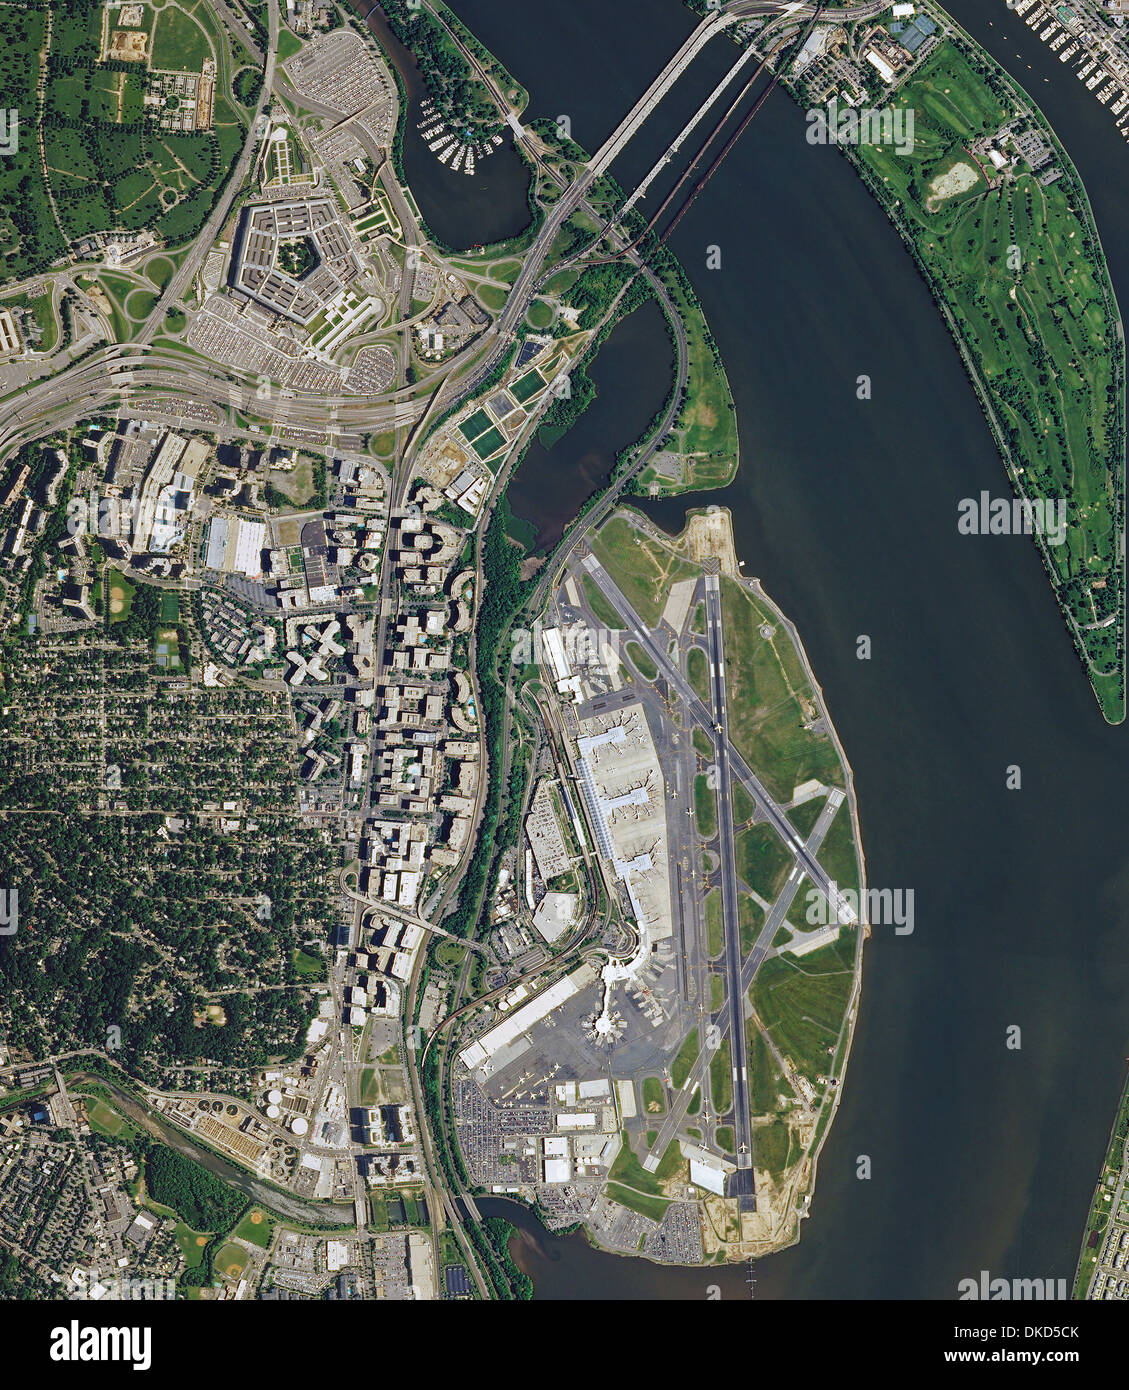 aerial photo map of Ronald Reagan Washington National Airport and